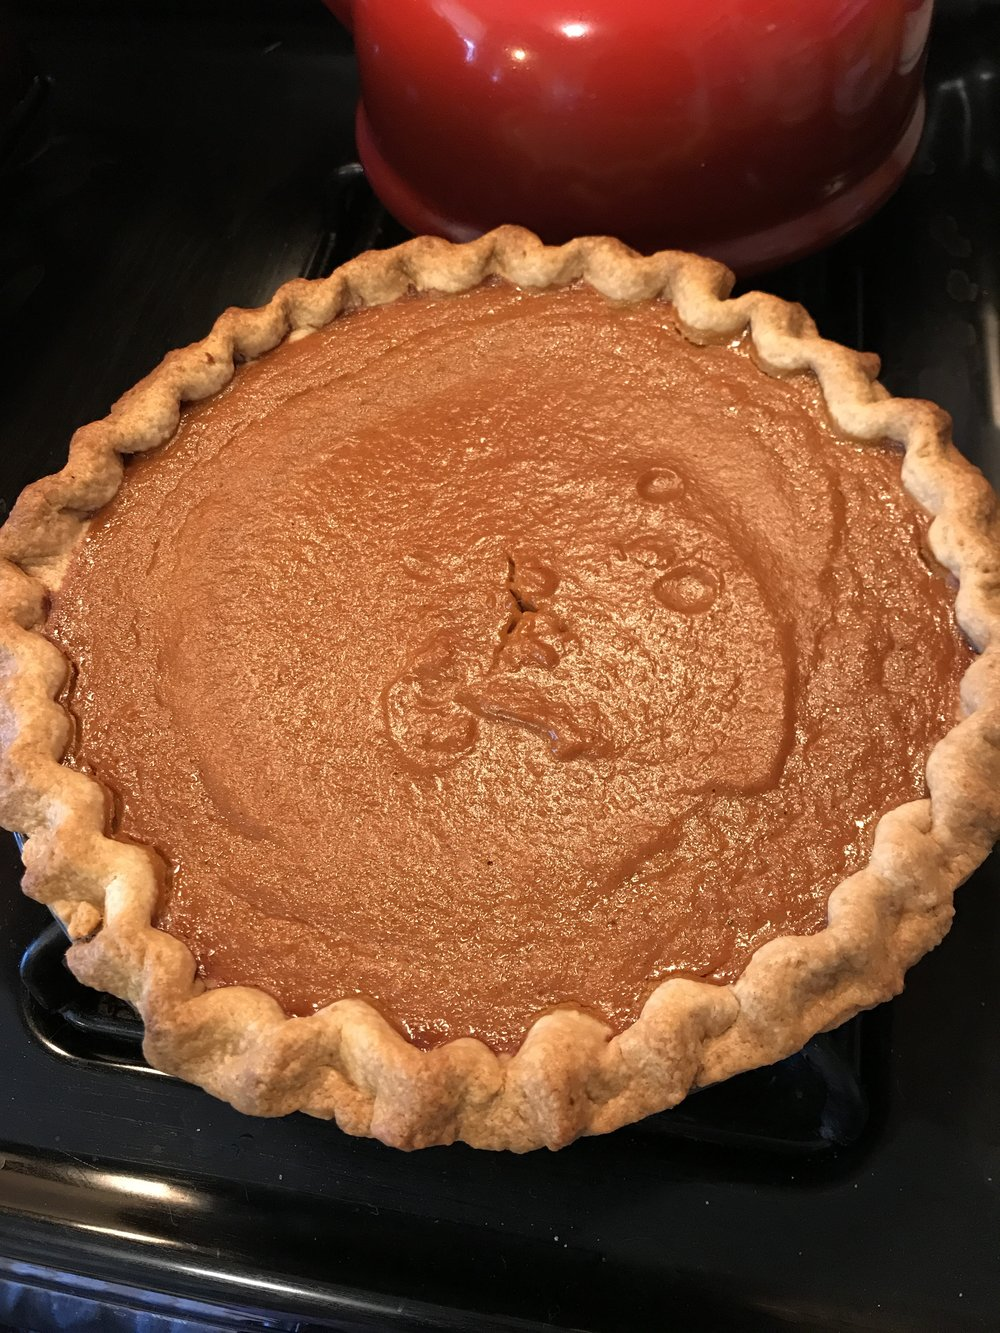 With God as my witness this will be the last bland, Libby's-based pumpkin pie I make in this lifetime.